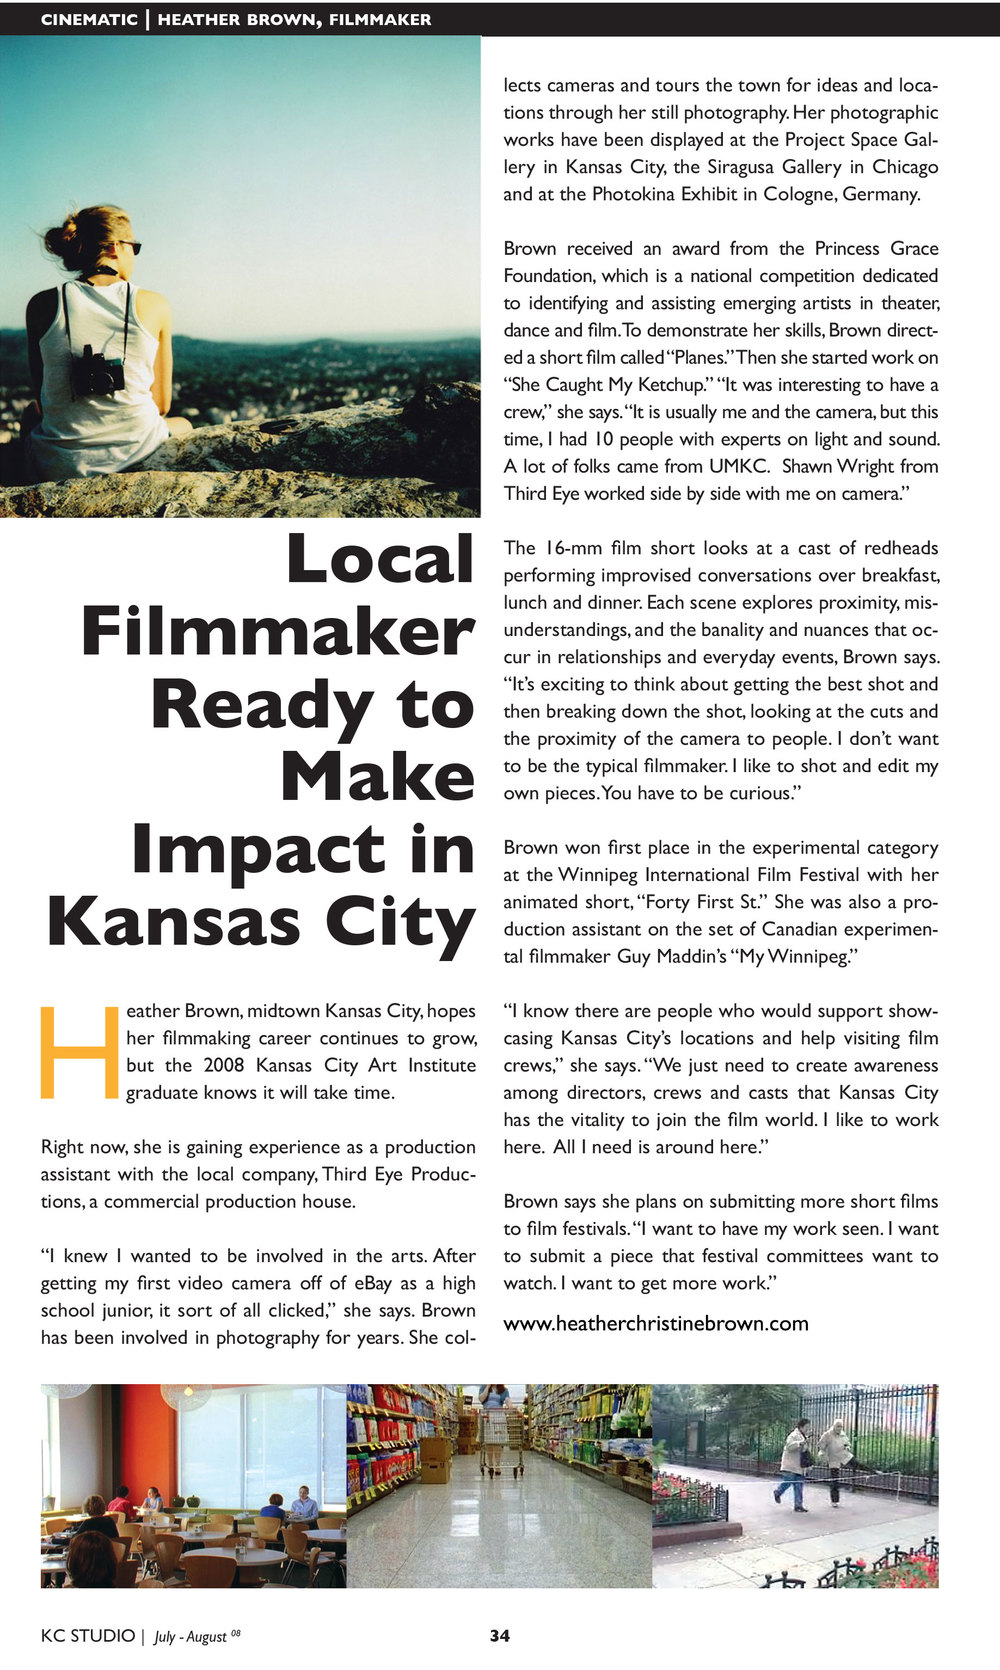 KC STUDIO MAGAZINE July/August 2008